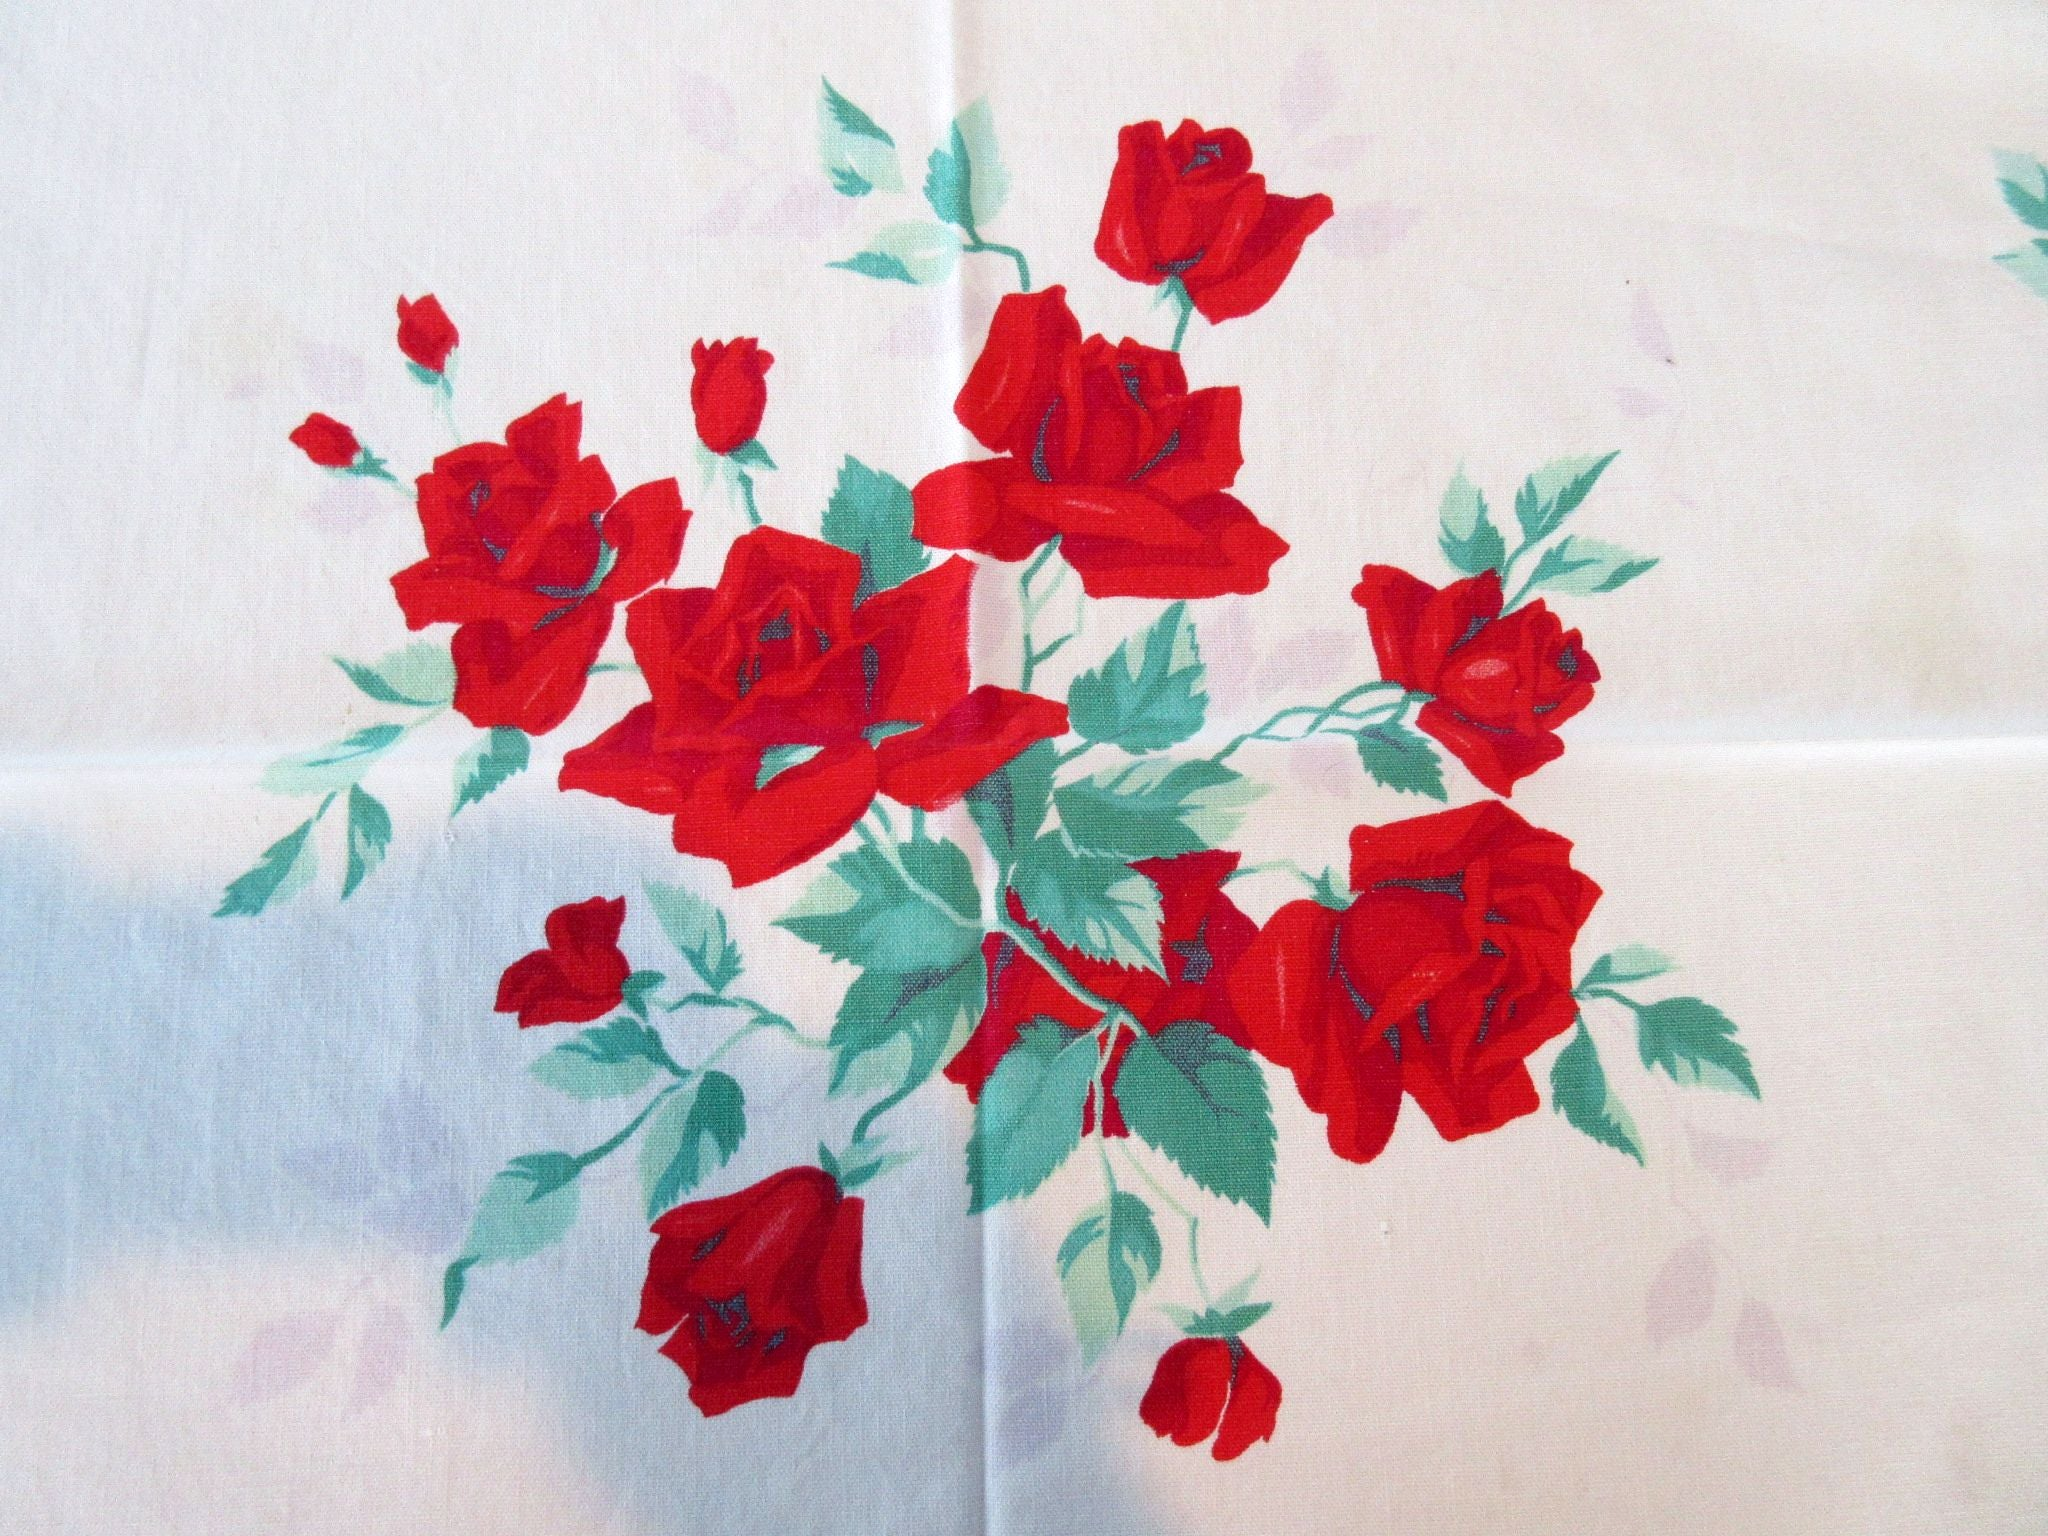 Small Wilendur Royal Rose Cutter? Vintage Printed Tablecloth (45 X 41)